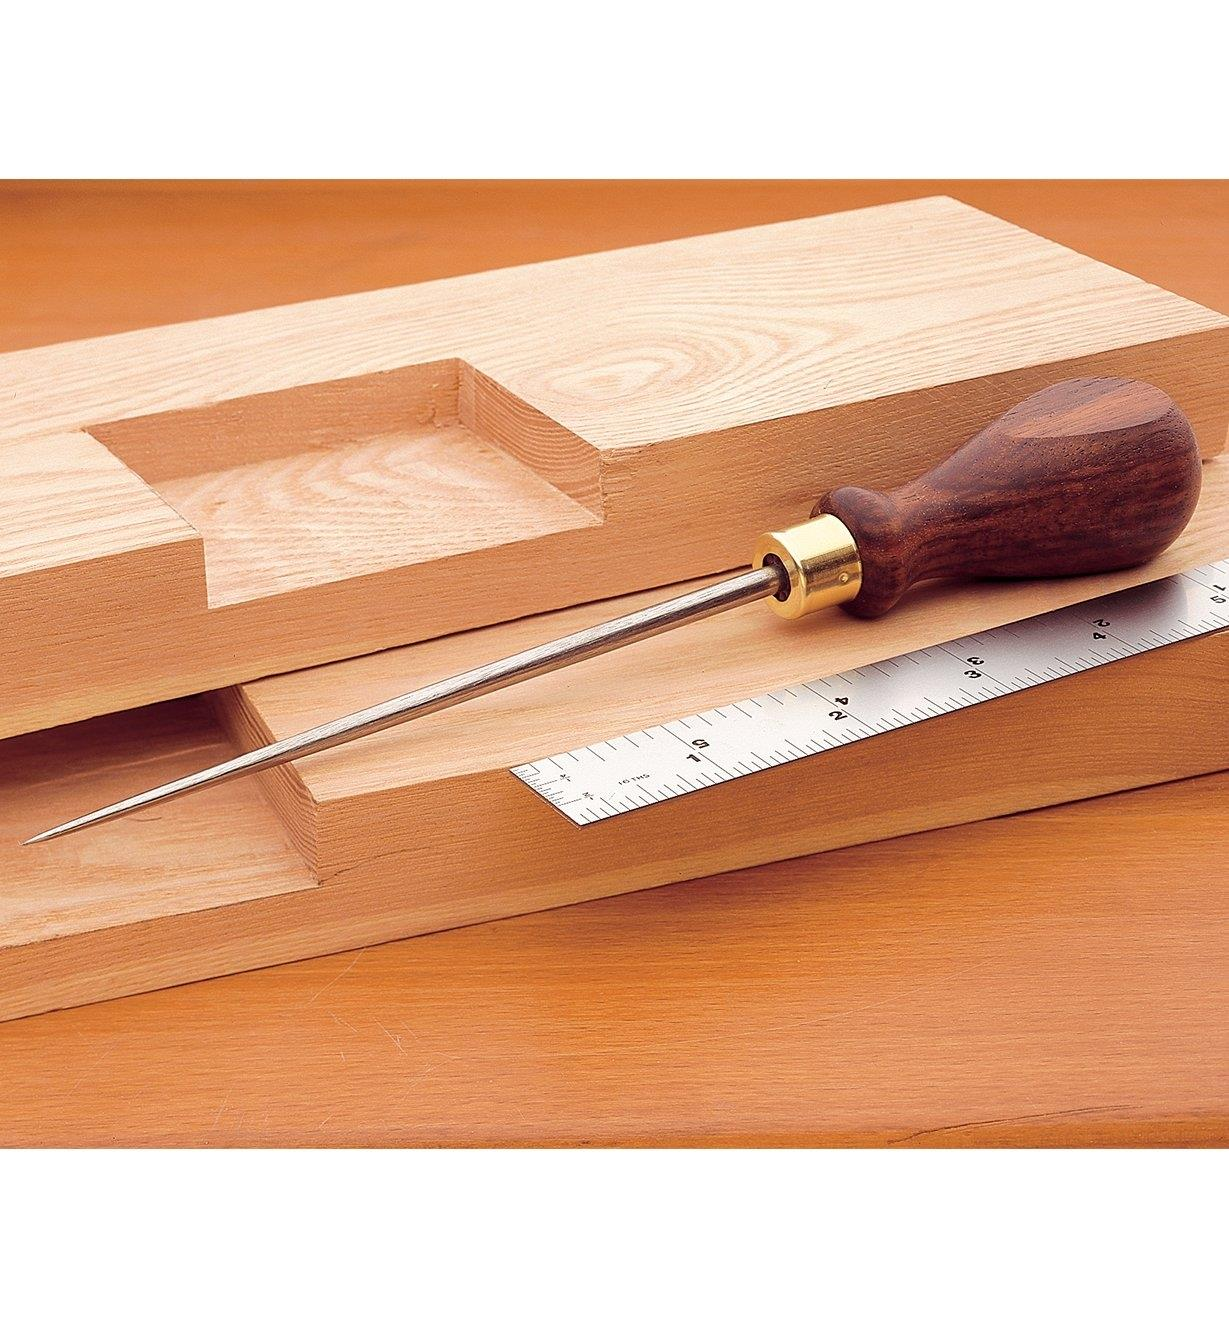 50K0601 - Lee Valley Scratch Awl